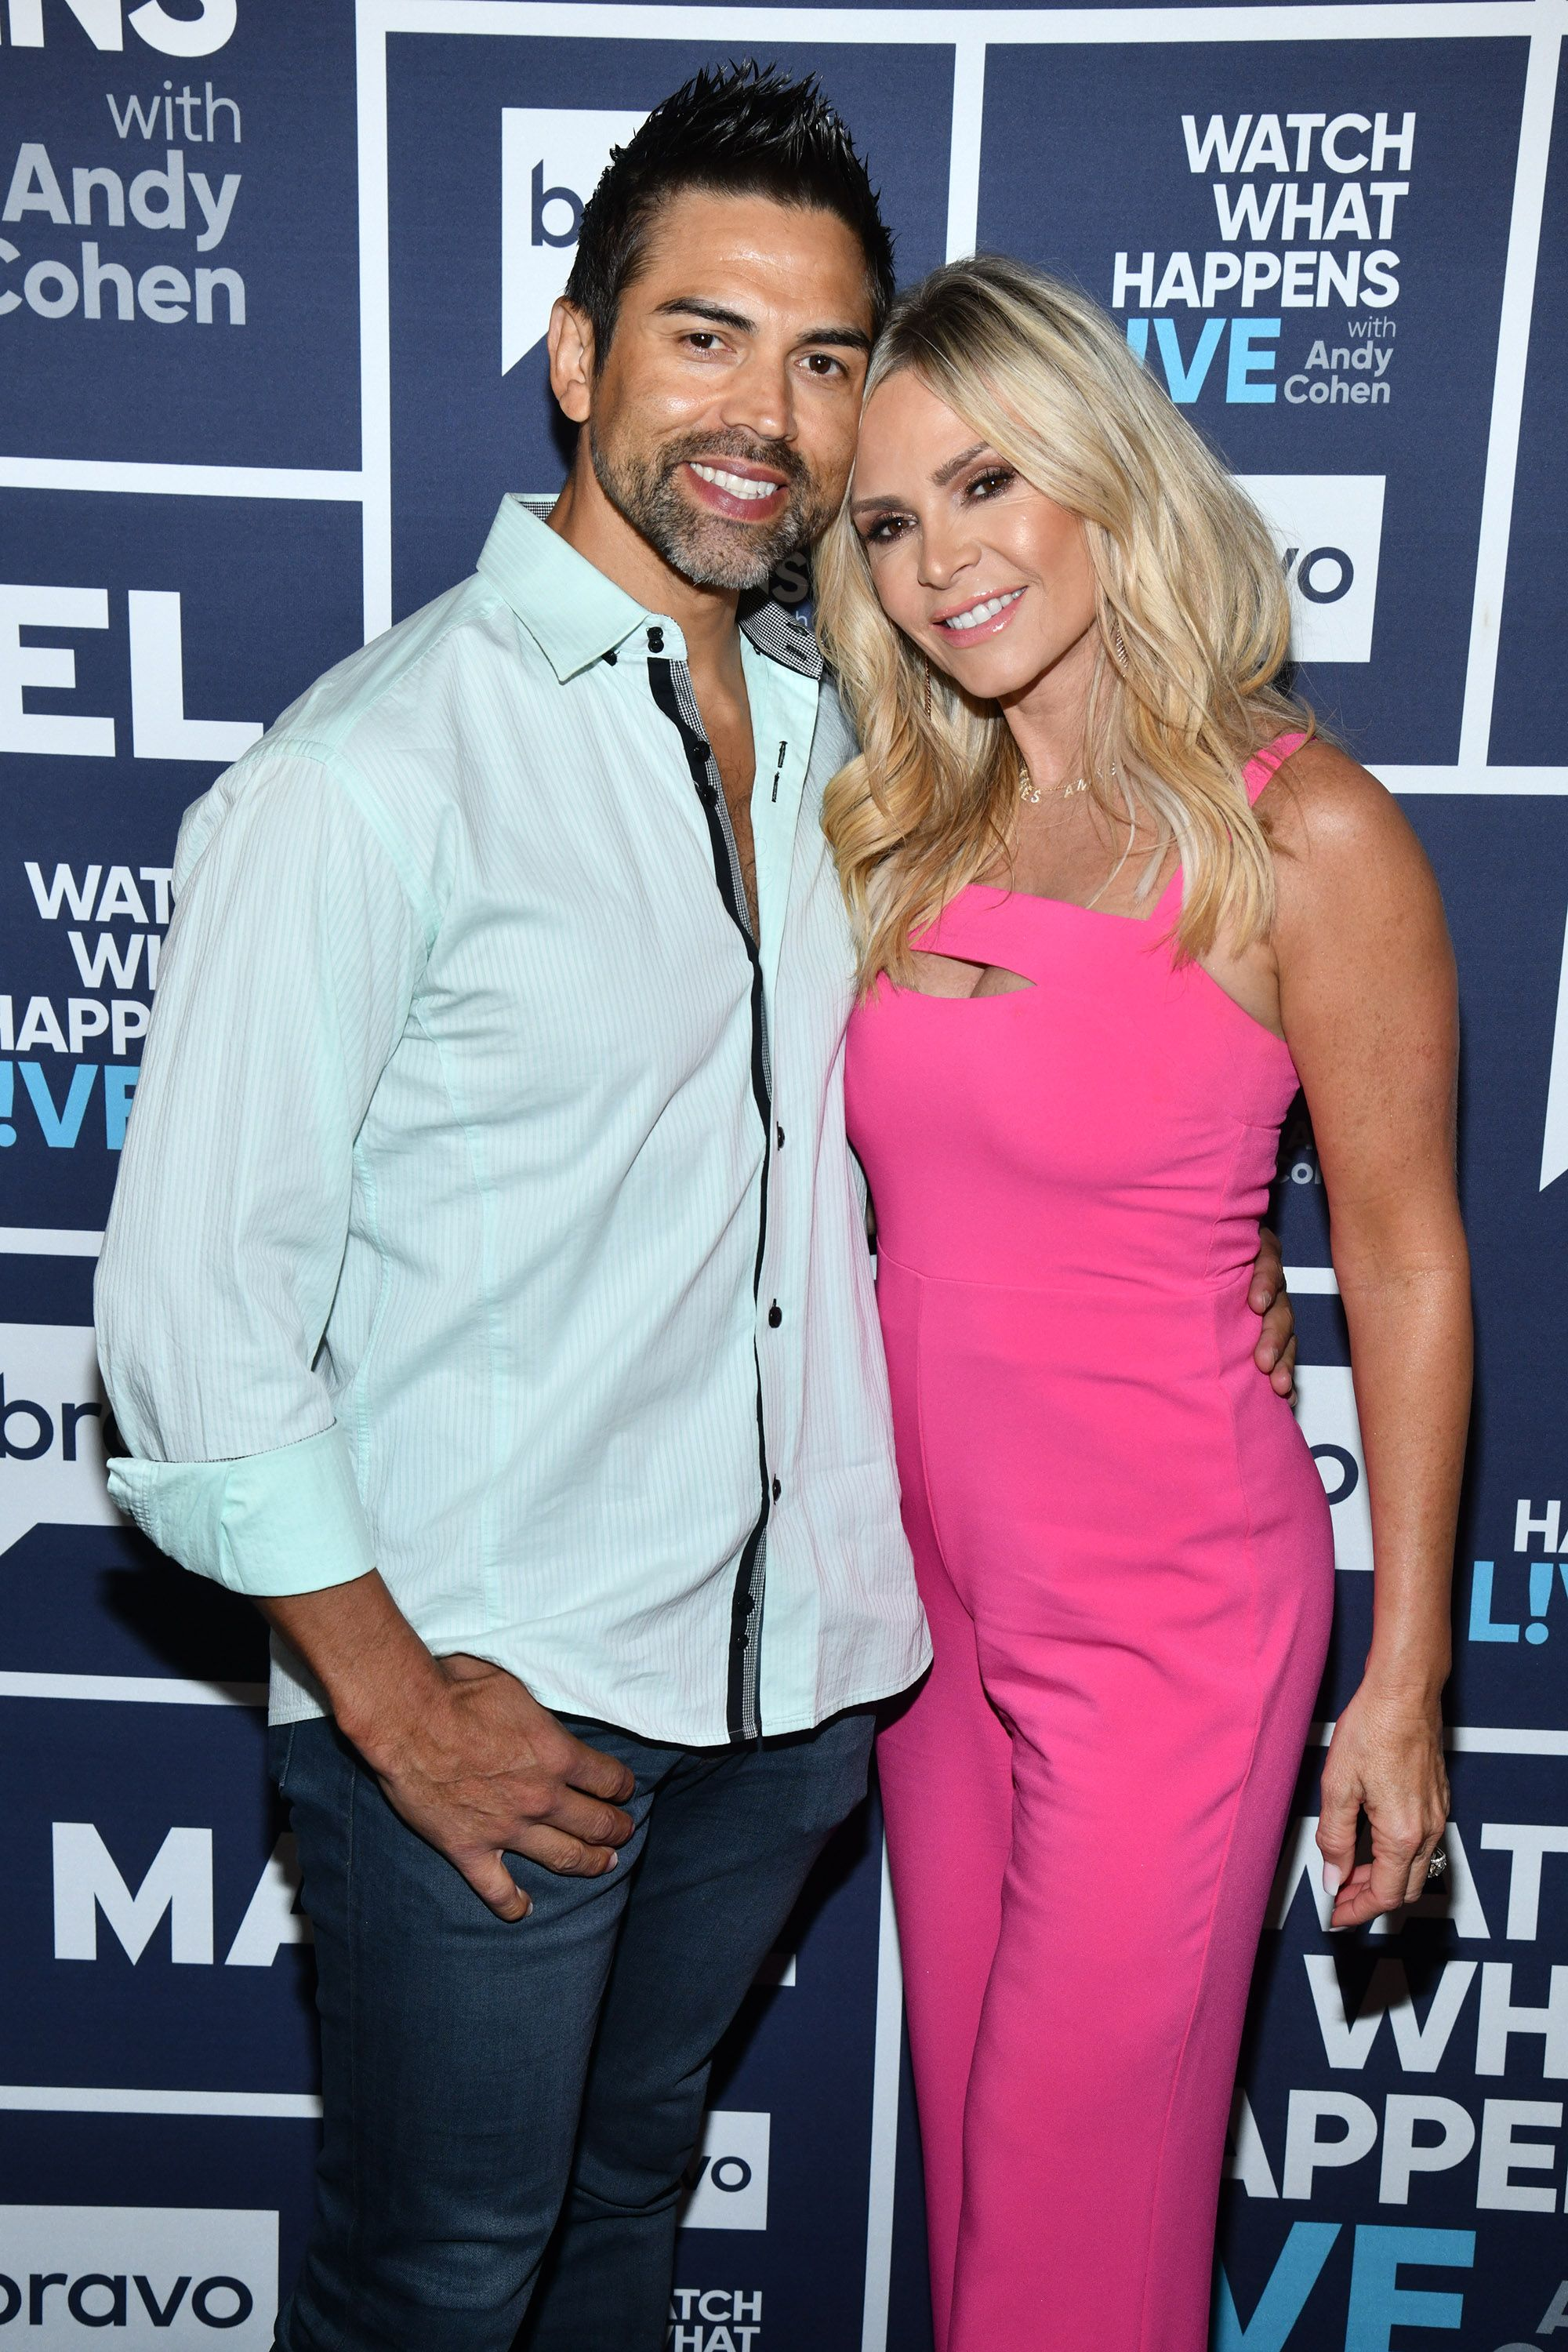 RHOC's Tamra Judge Says Her Husband's Heart Problems Impacted Their Marriage